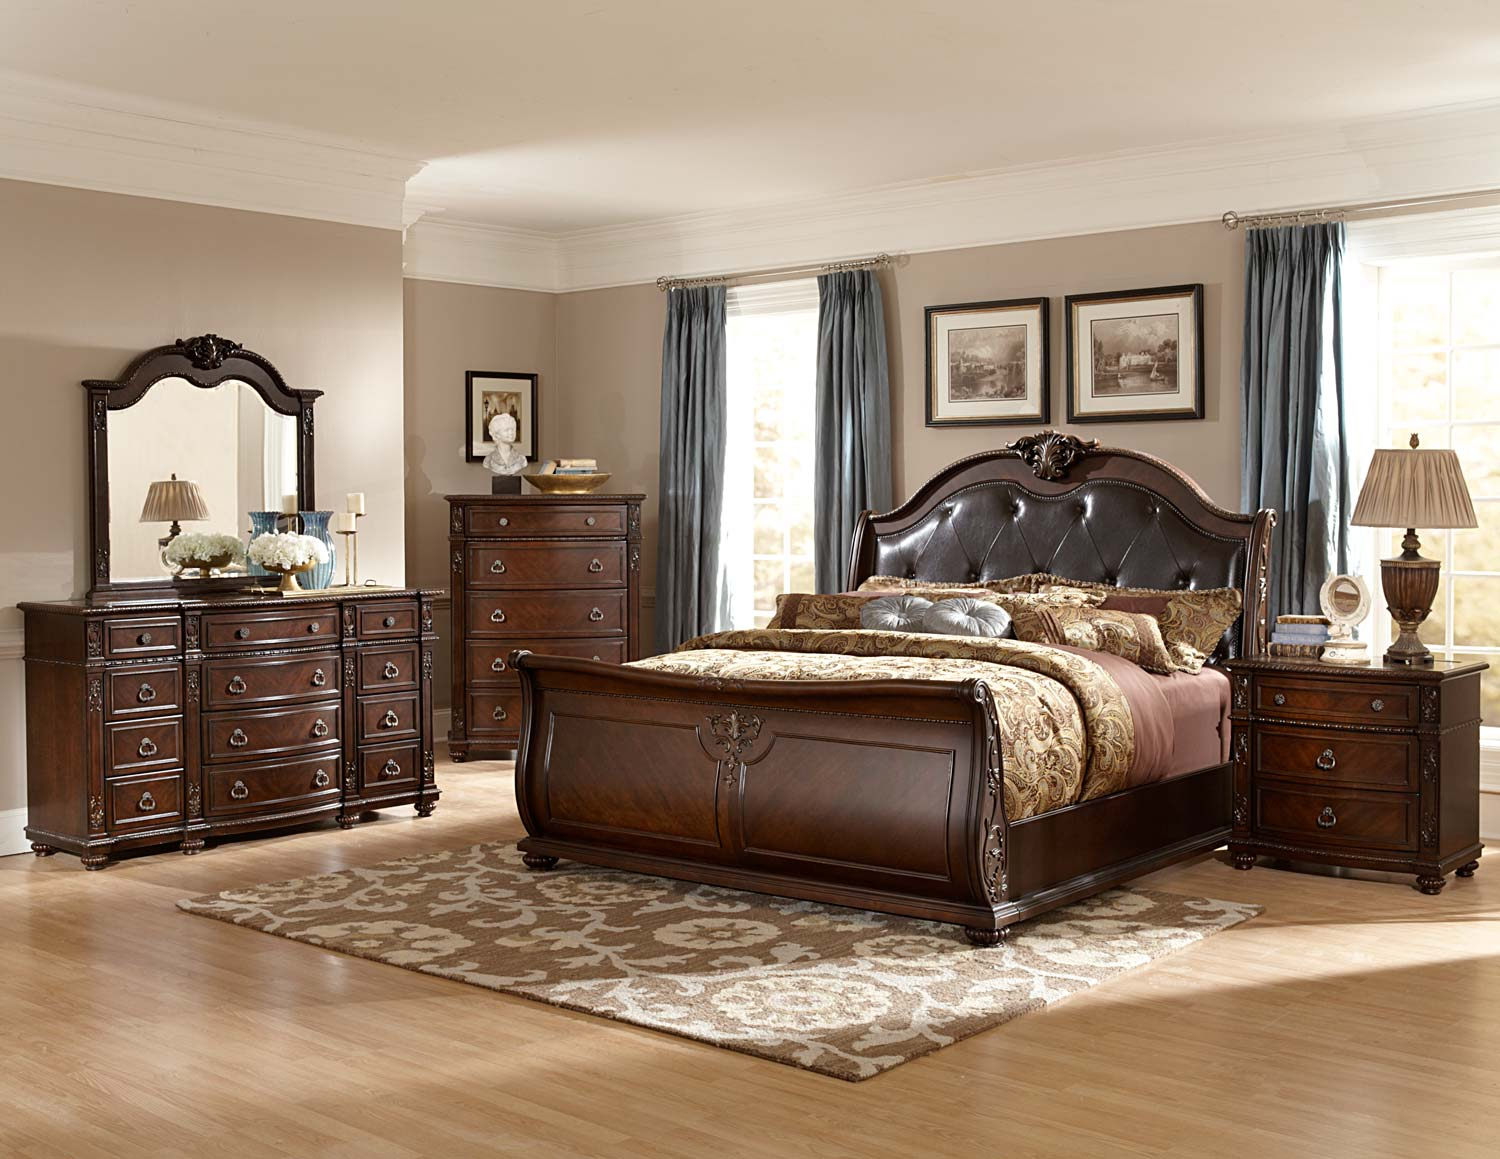 Homelegance hillcrest manor sleigh bedroom set cherry for Bedroom designs with sleigh beds